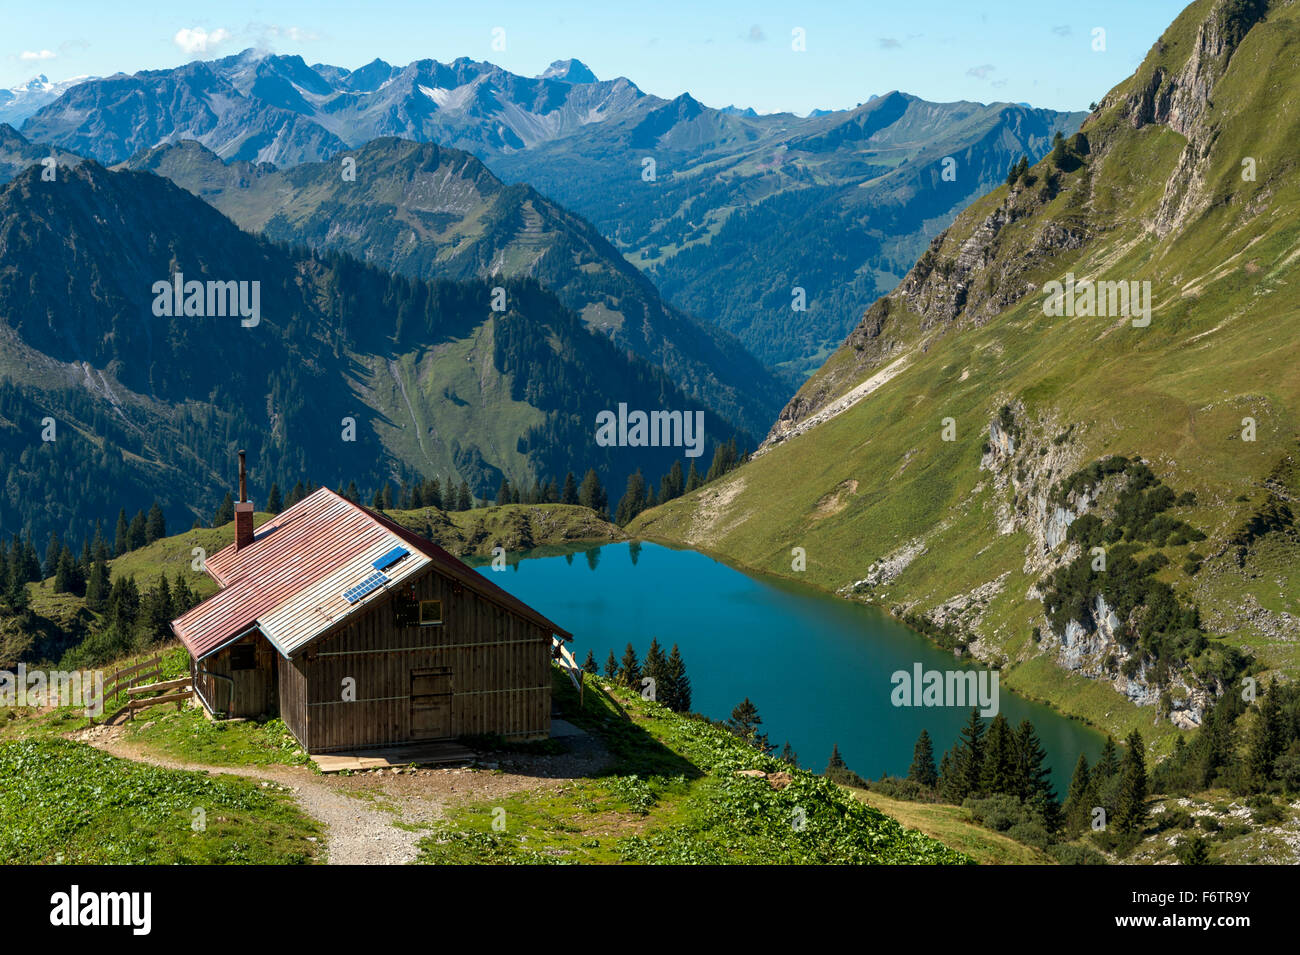 deutschland bayern oberstdorf almh tte am seealpsee stockfoto bild 90284935 alamy. Black Bedroom Furniture Sets. Home Design Ideas